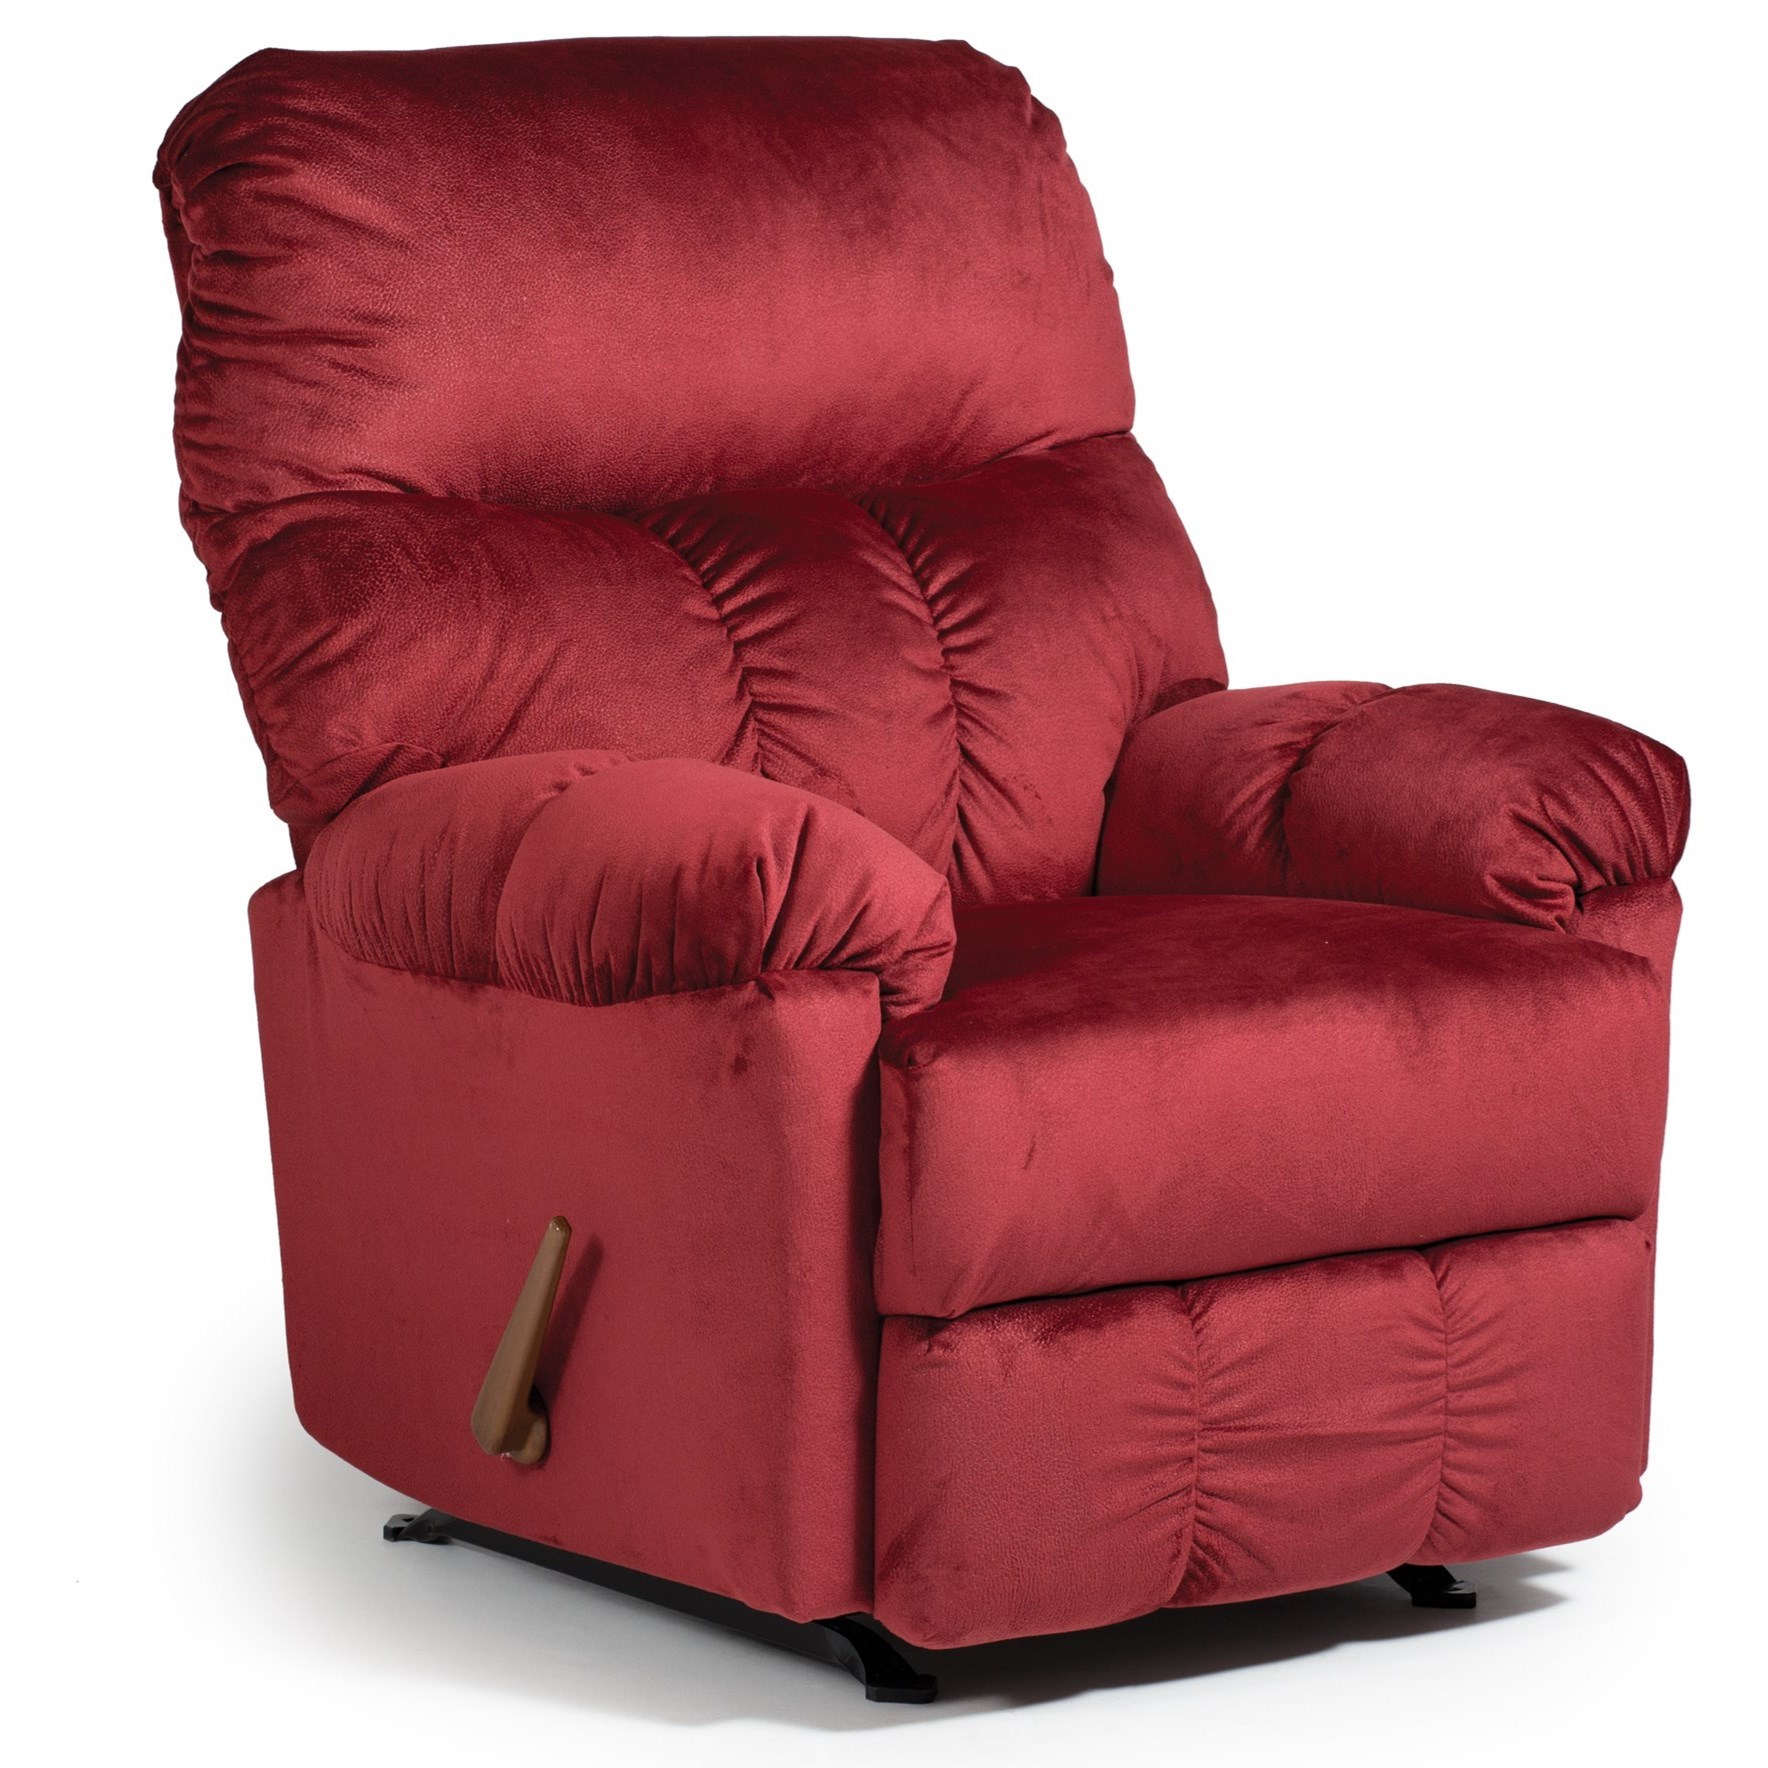 Ares Ares Swivel Glider Recliner by Best Home Furnishings at Lapeer Furniture & Mattress Center